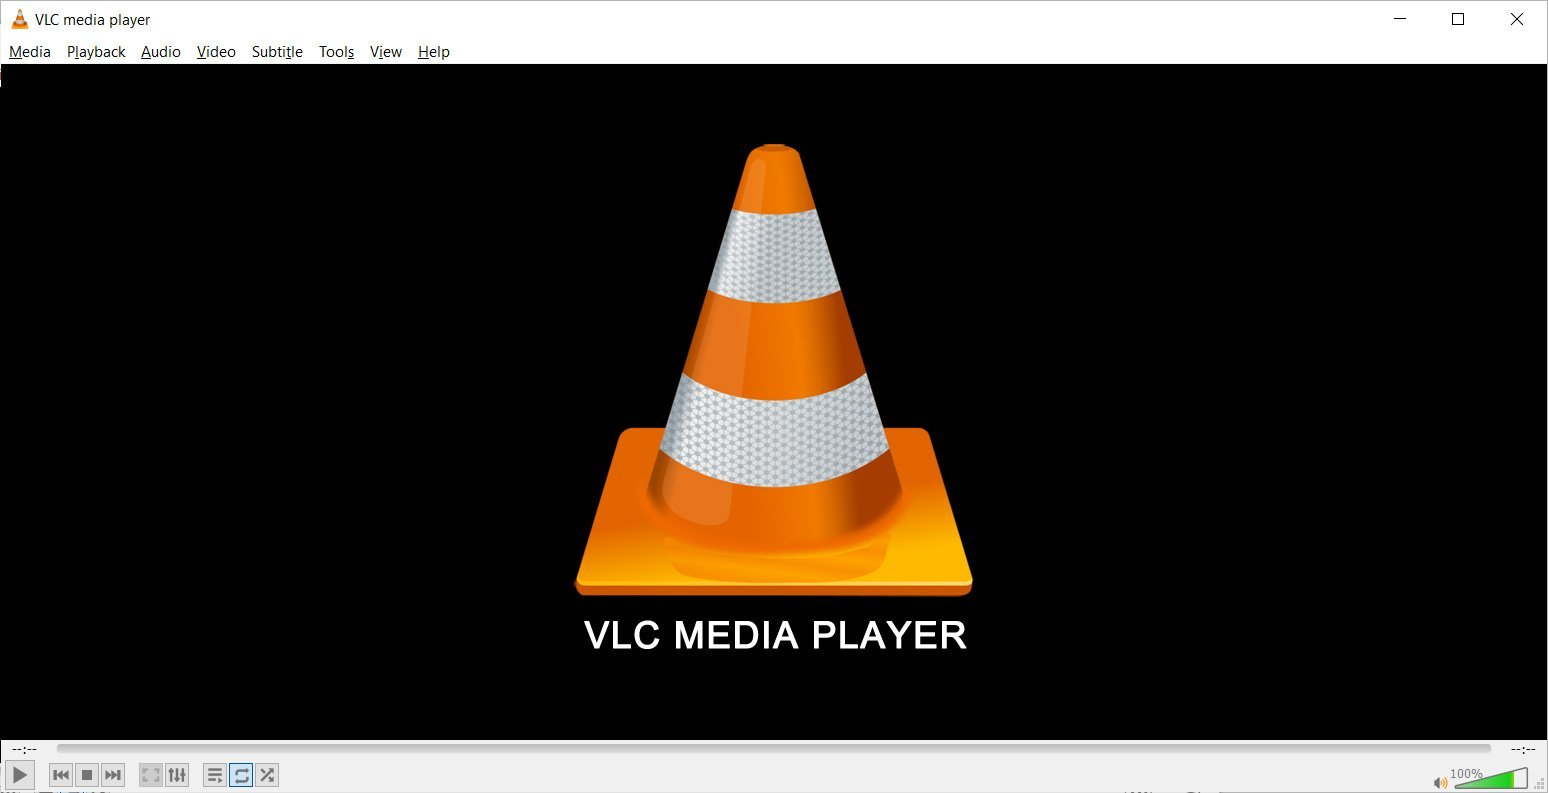 VLC Media Player 3.0.12 Fixes Multiple Remote Code Execution Flaws